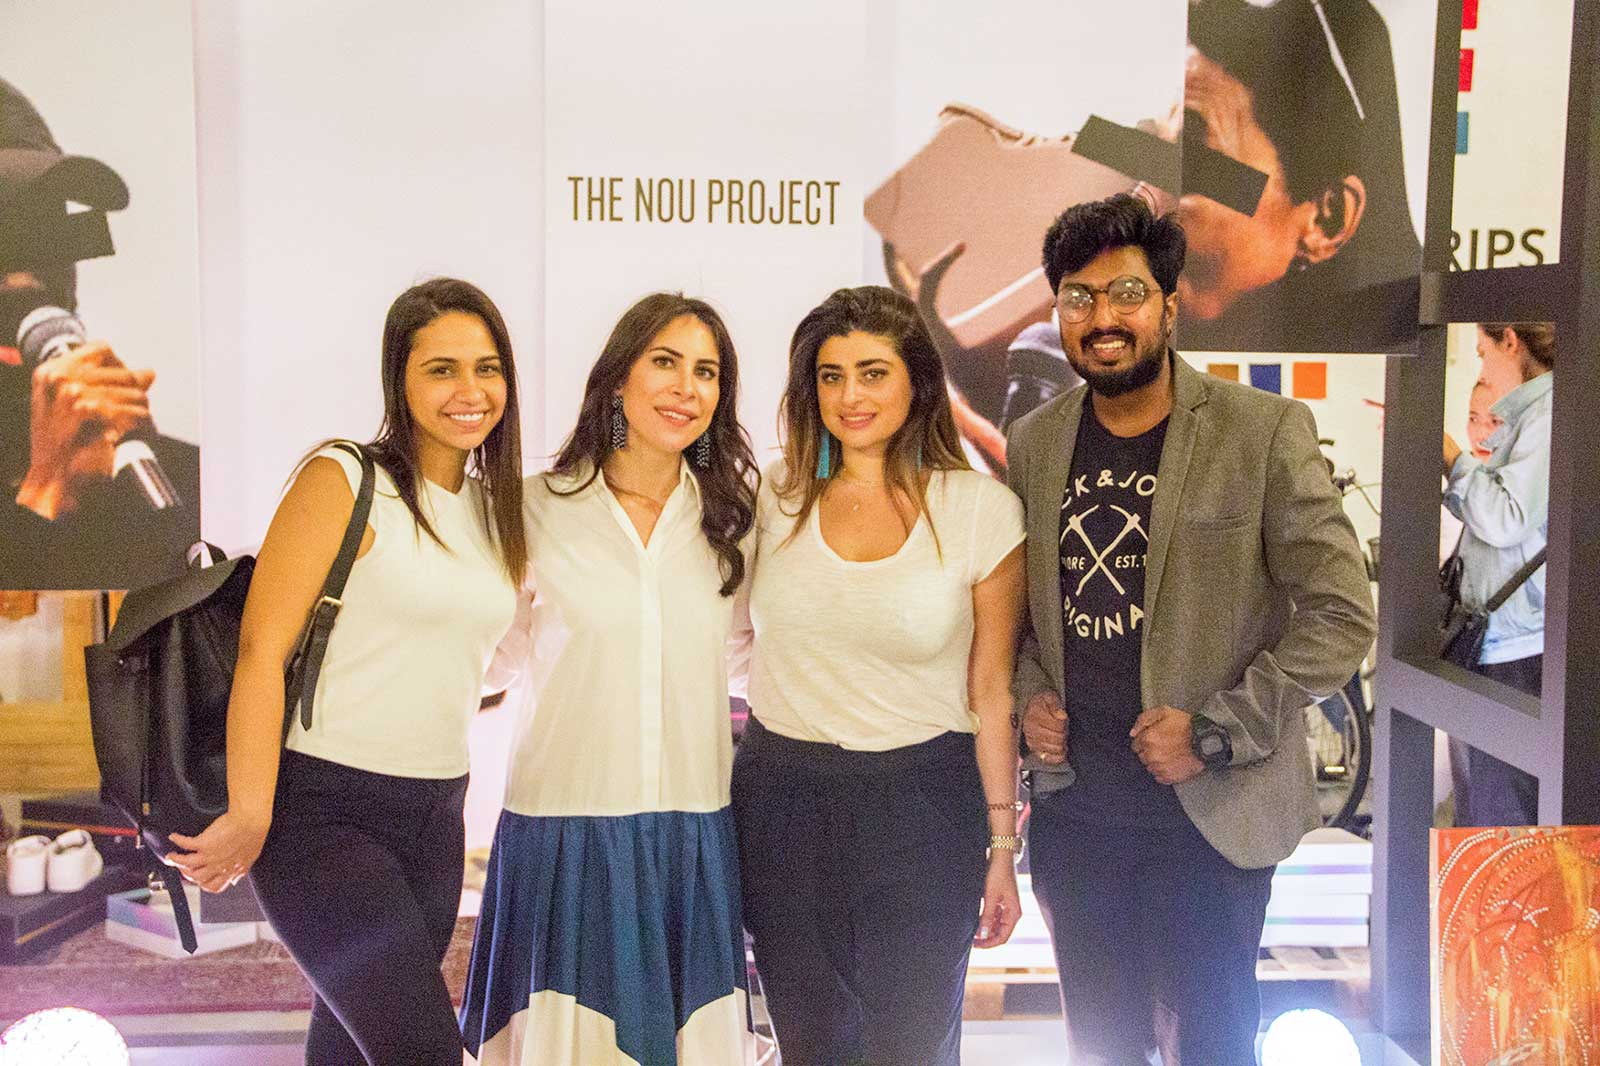 THE NOU PROJECT - Creative Footware launch @ Alserkal Avenue